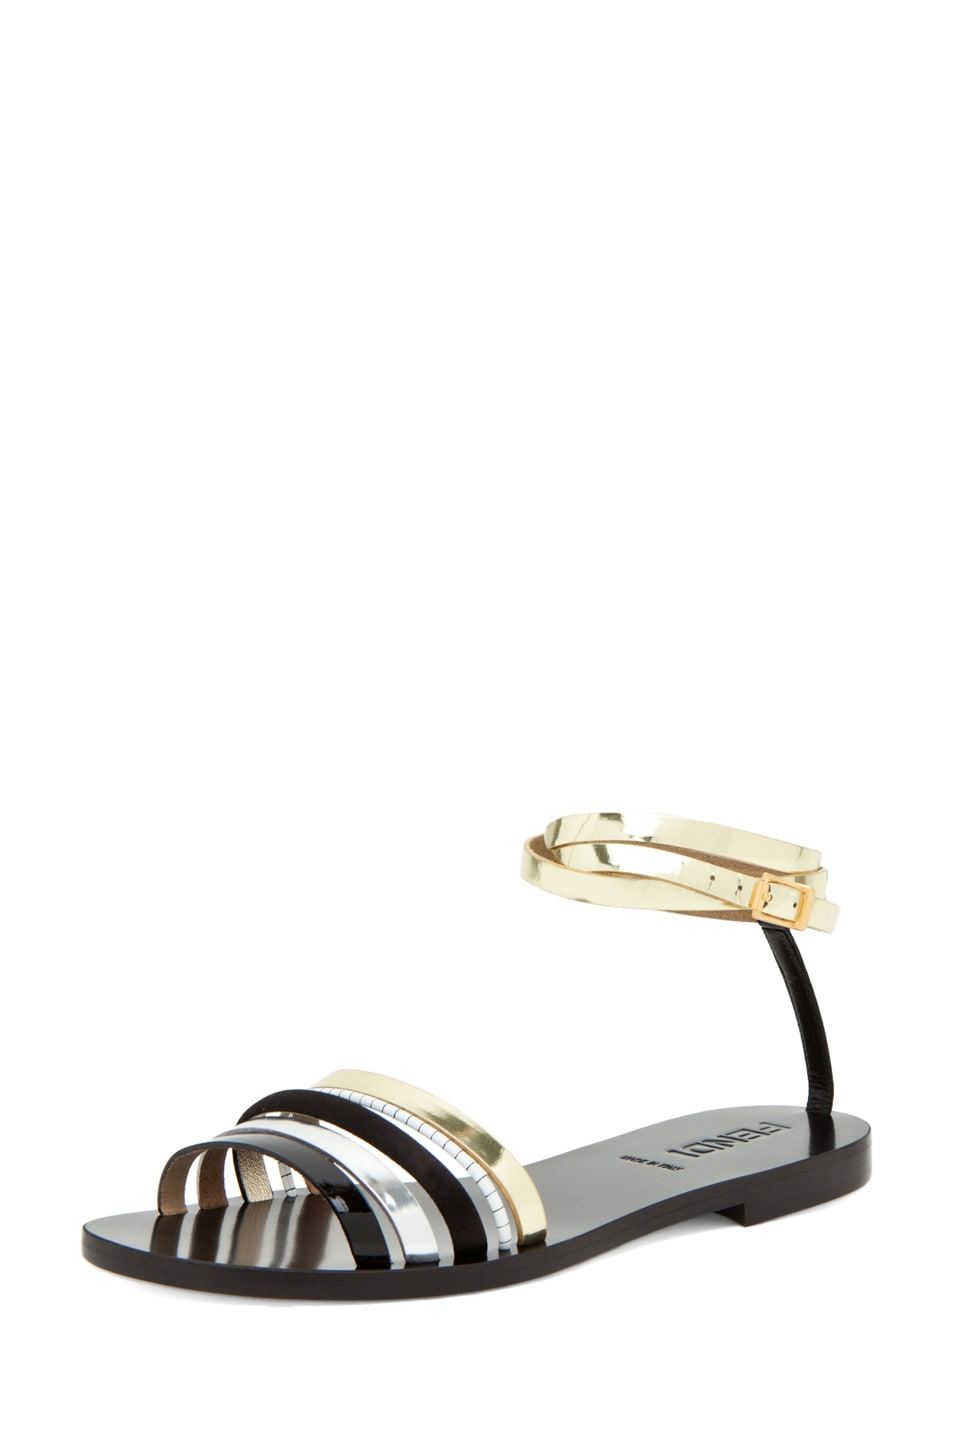 Image 2 of Fendi Strappy Sandal in Black/Silver